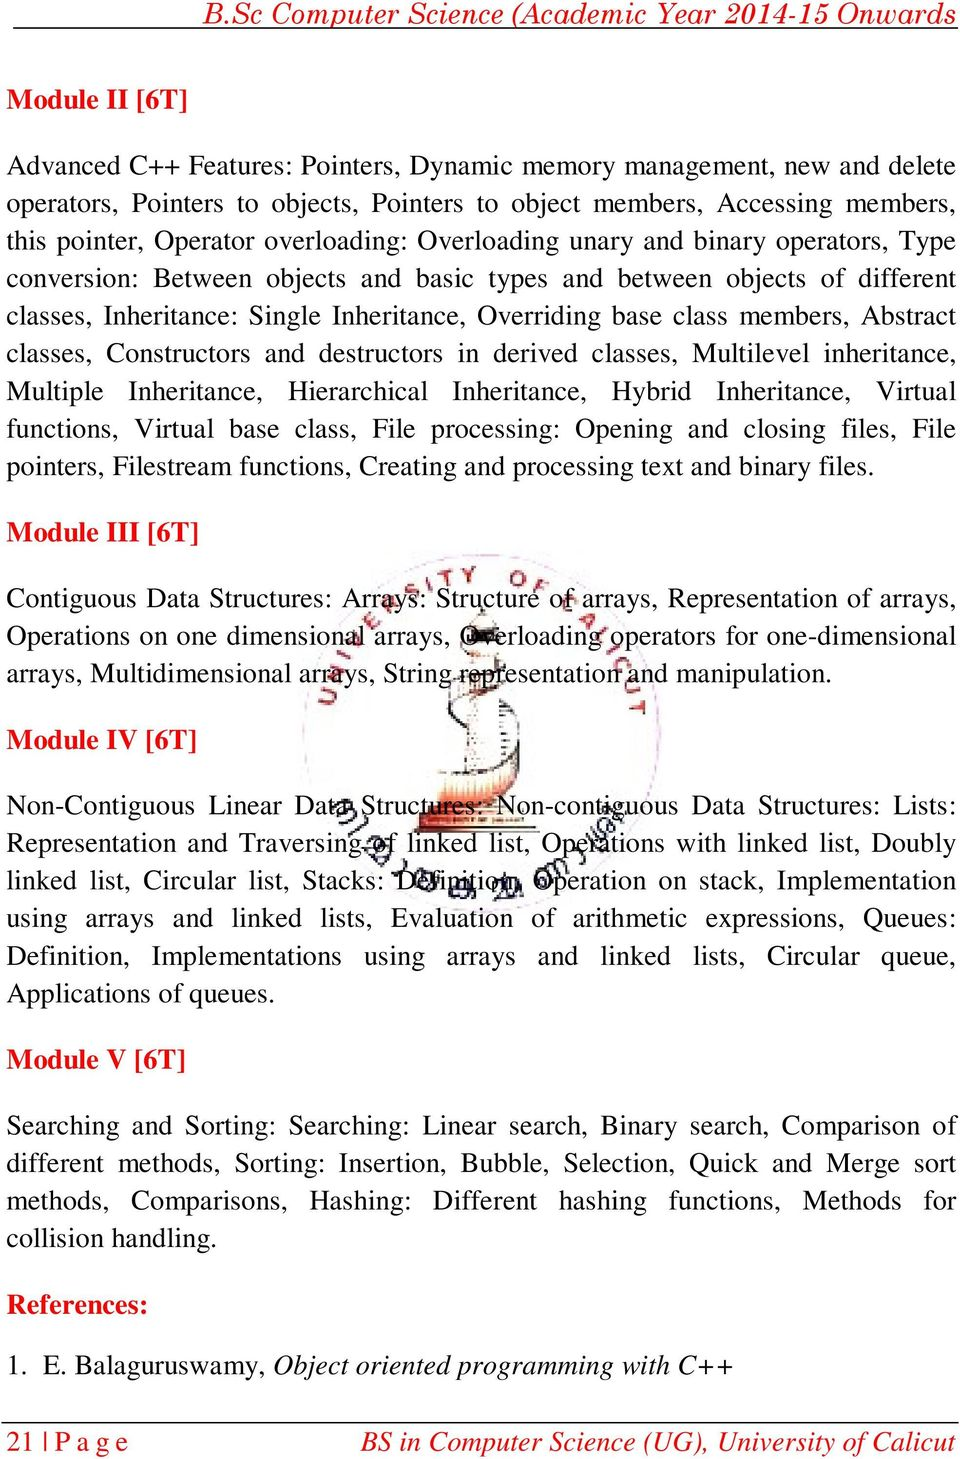 BCS2B02: OOP Concepts and Data Structures Using C++ - PDF